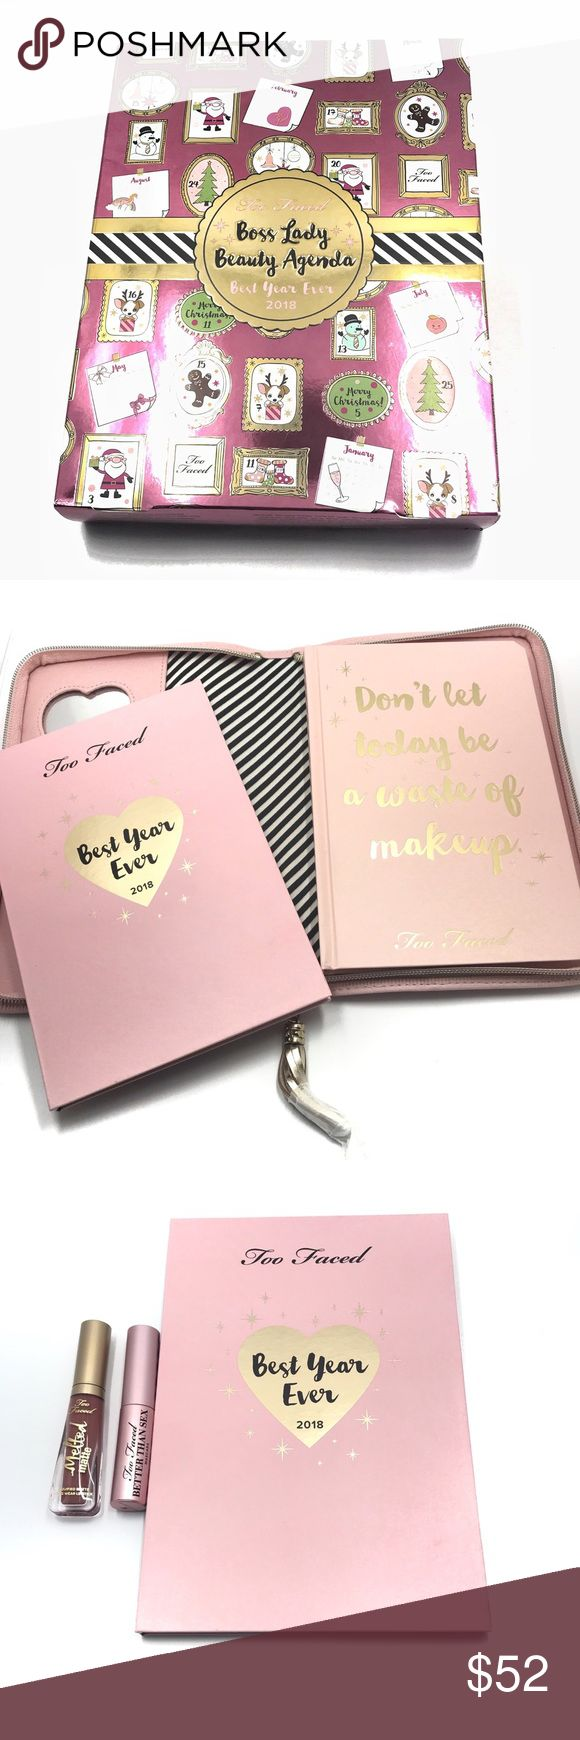 Too Faced Boss Lady Best Of The year Come with a planner, palette, deluxe size mascara, deluxe size lipstick.  Brand New. Too Faced Makeup